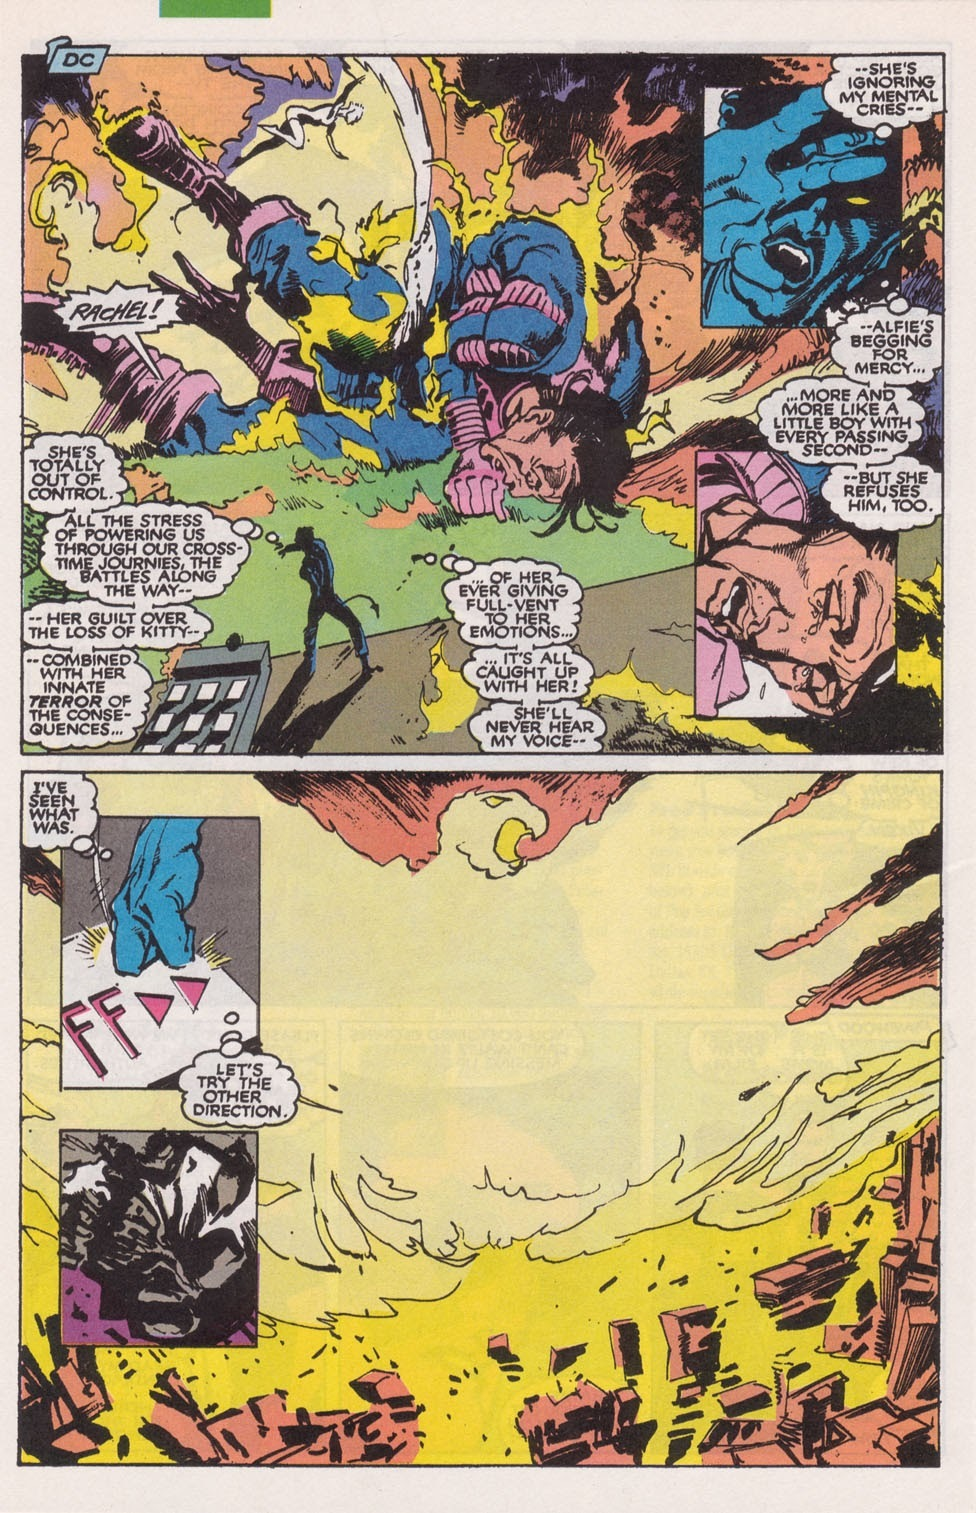 Nearly kills the reality warper Alfie Omeagan and destroys all of his universes Washington DC before the universe is erased and she is returned home - Excalibur v1 #27